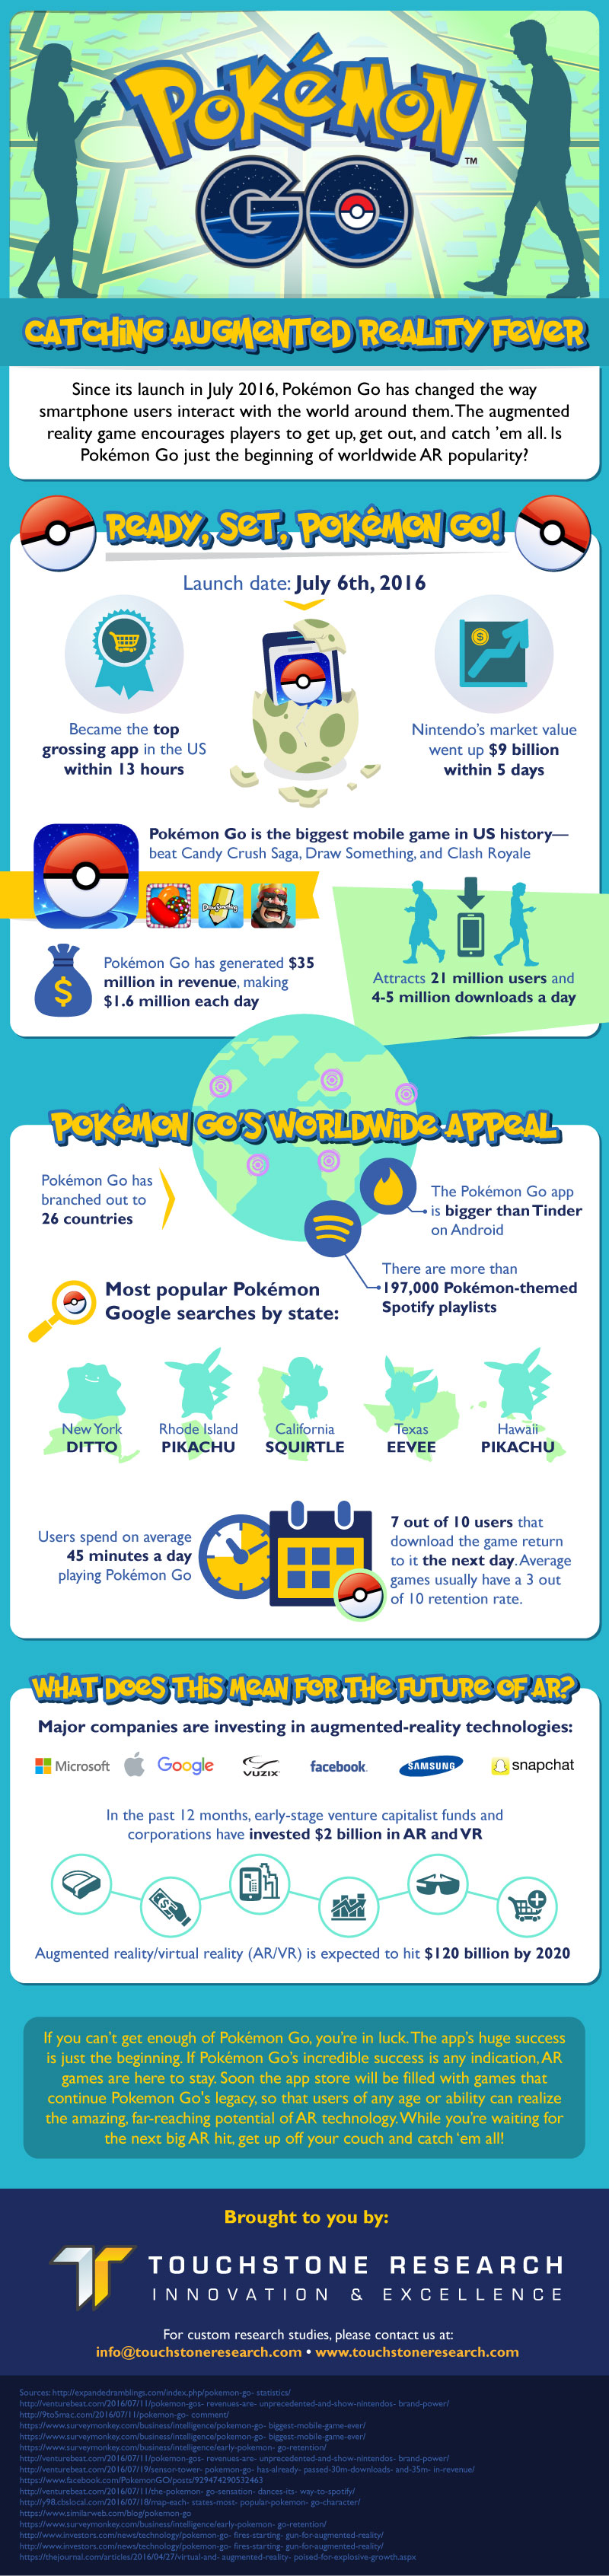 Touchstone Research - PokemonGo AR Infographic